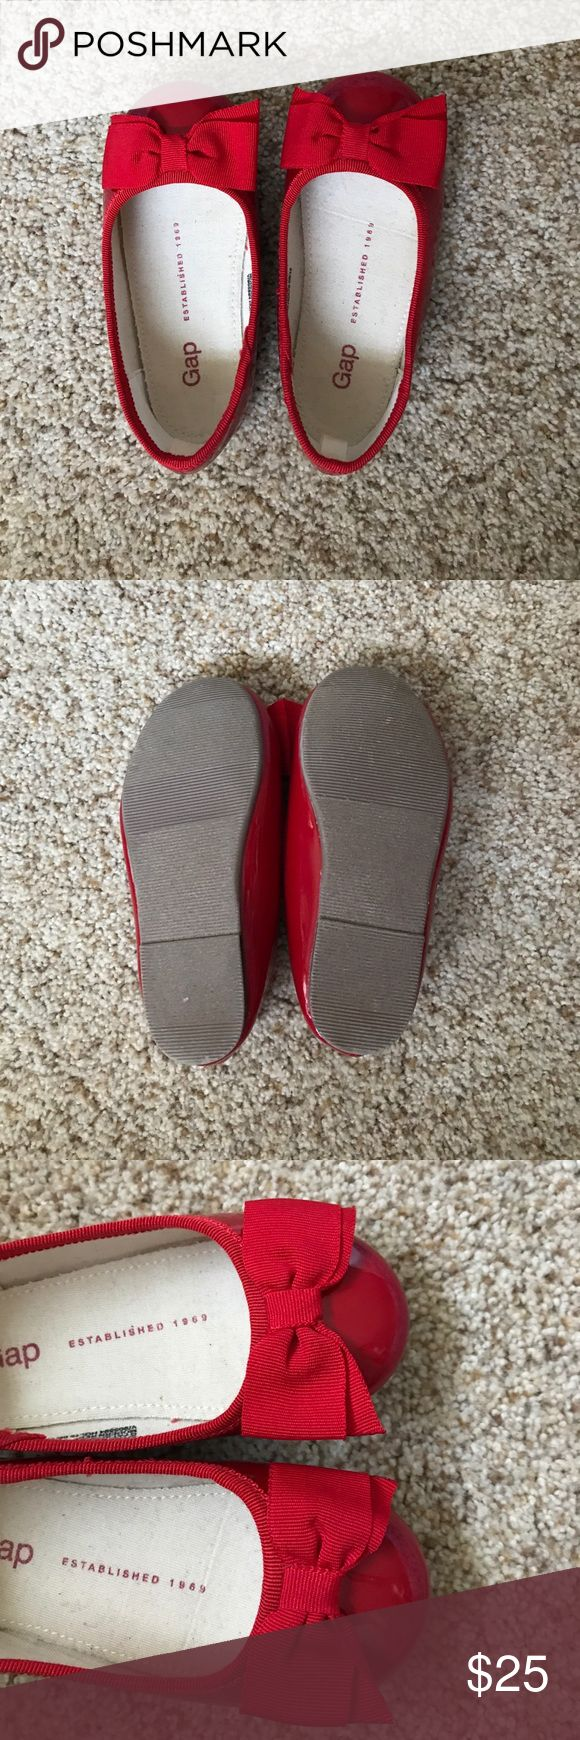 Toddler girl red flats Red flats with a bow! Brand new! GAP Shoes Dress Shoes